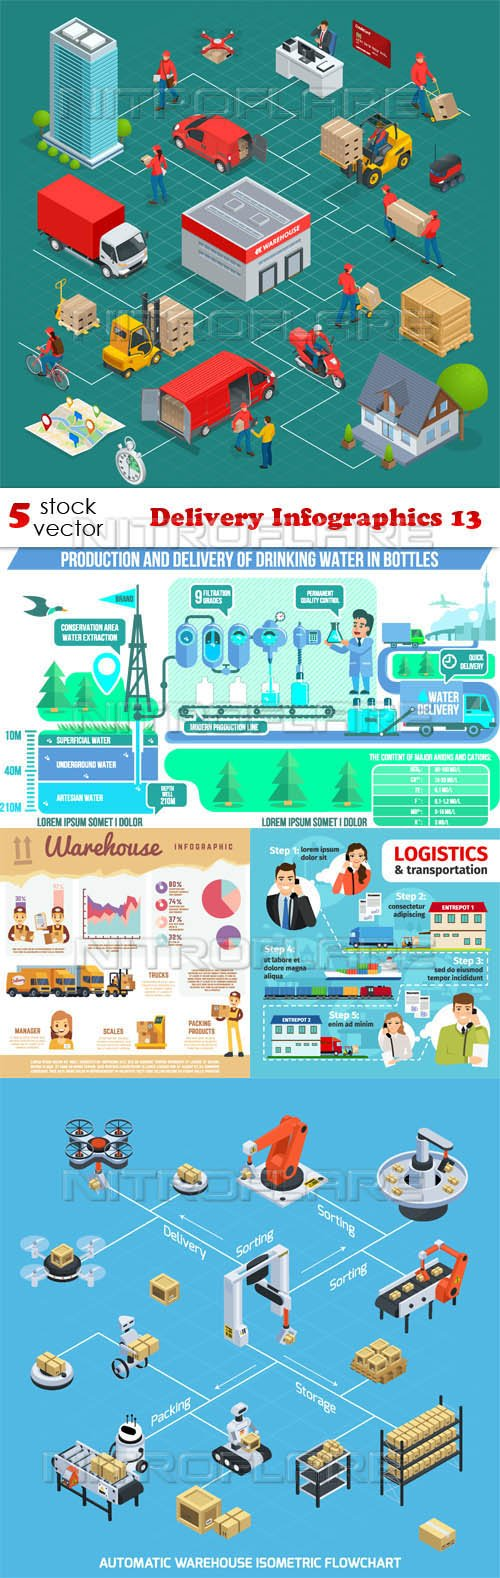 Vectors - Delivery Infographics 13